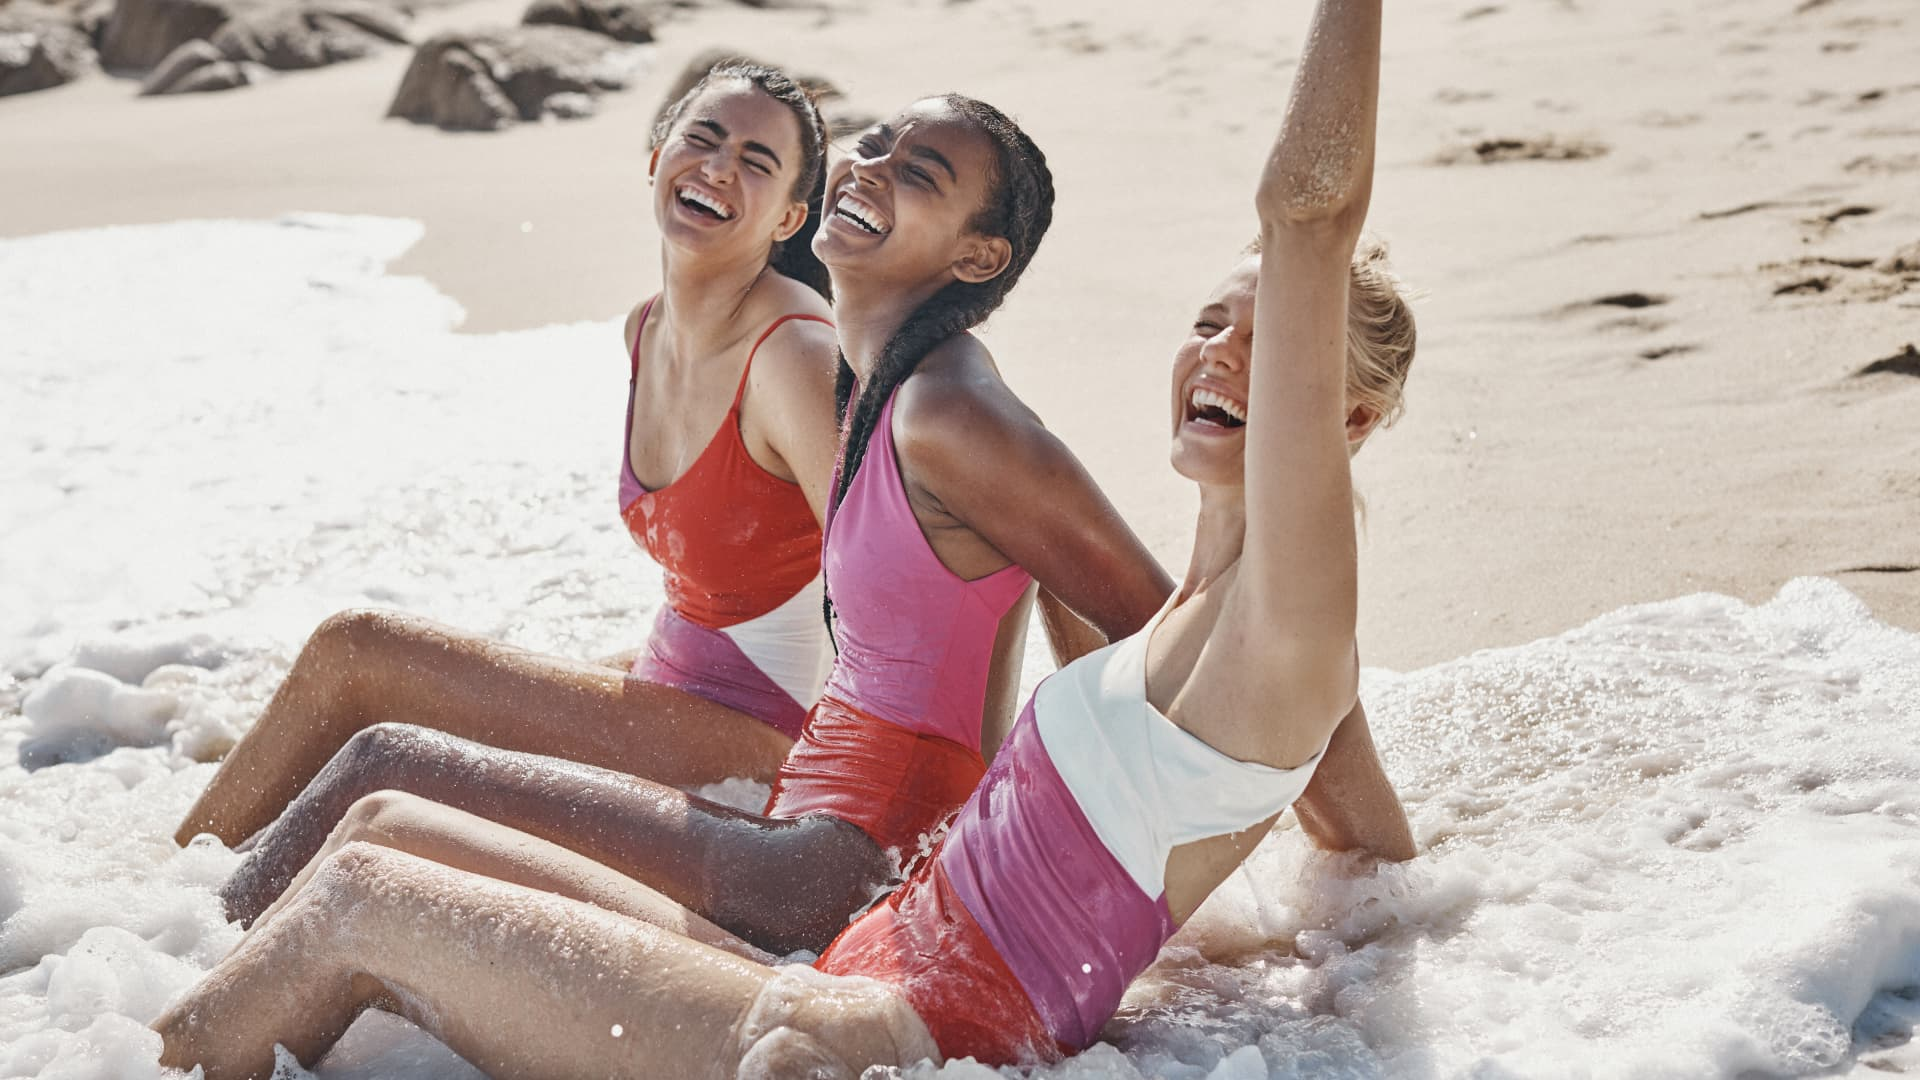 Online swim brand Summersalt said its sales are up more than 850% from the same time a year earlier month-to-date in April.